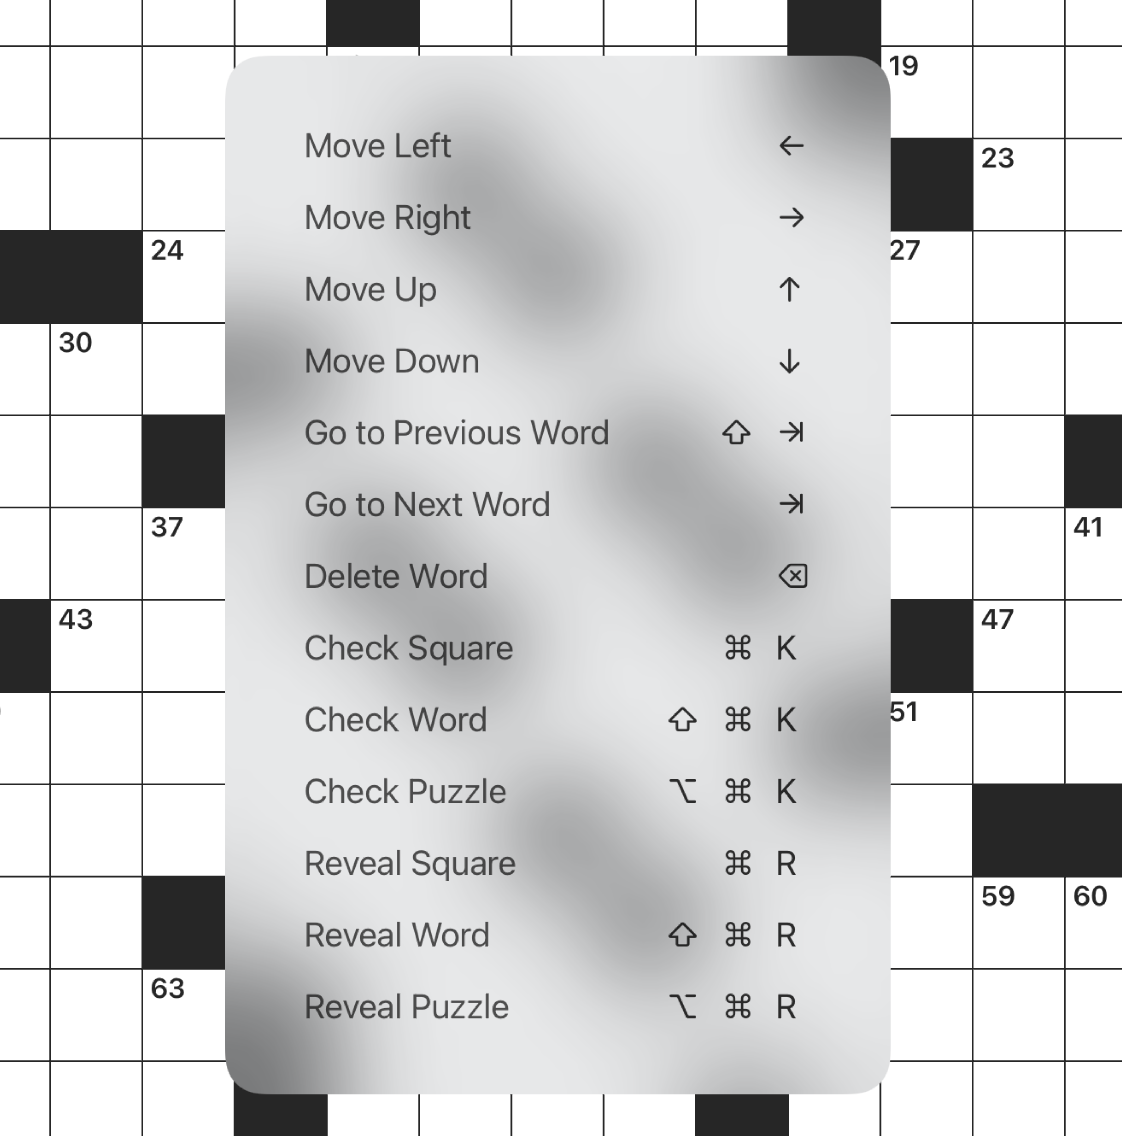 Screenshot of Black Ink for iOS showing a full list of keyboard shortcuts for puzzle navigation, etc.